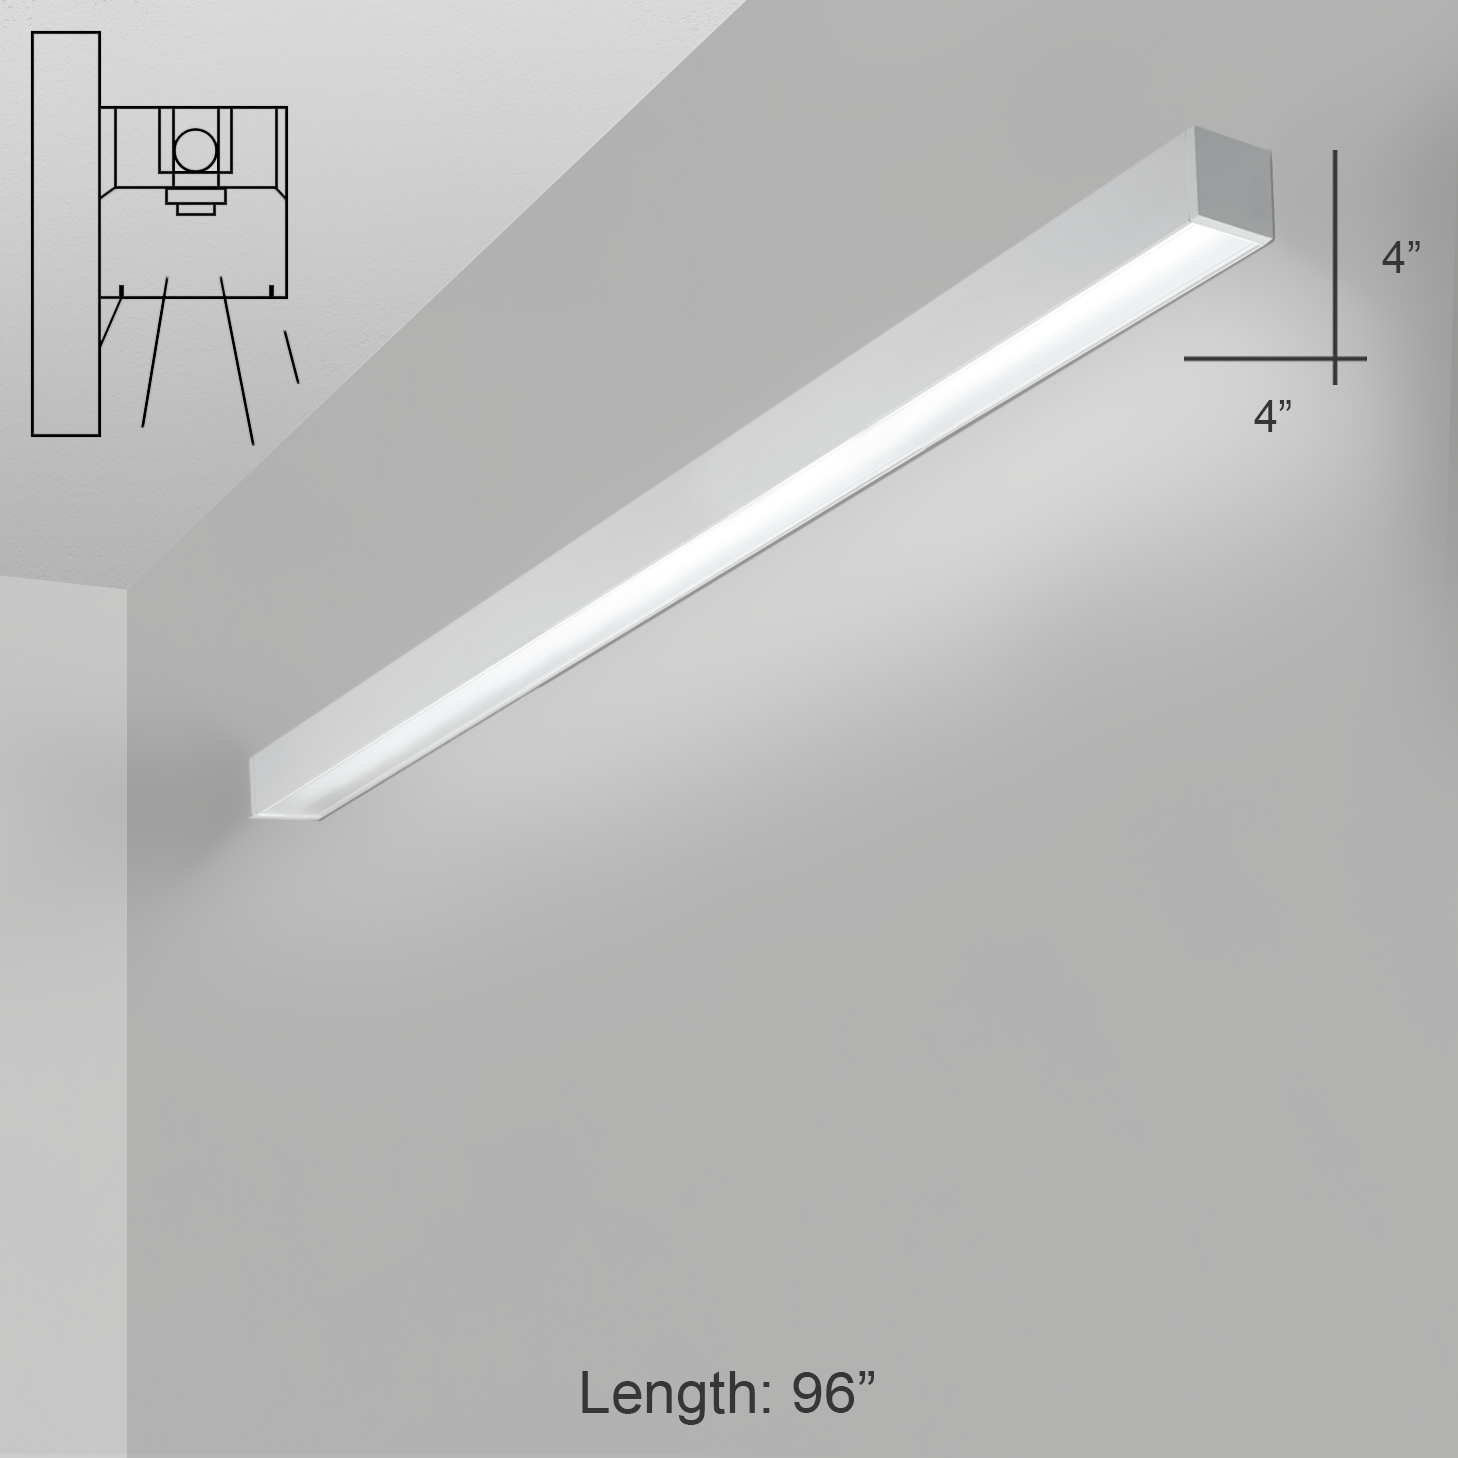 Alcon Lighting 11141 8 W I44 Series Architectural Led Foot Linear Wall Mount Direct Light Fixture